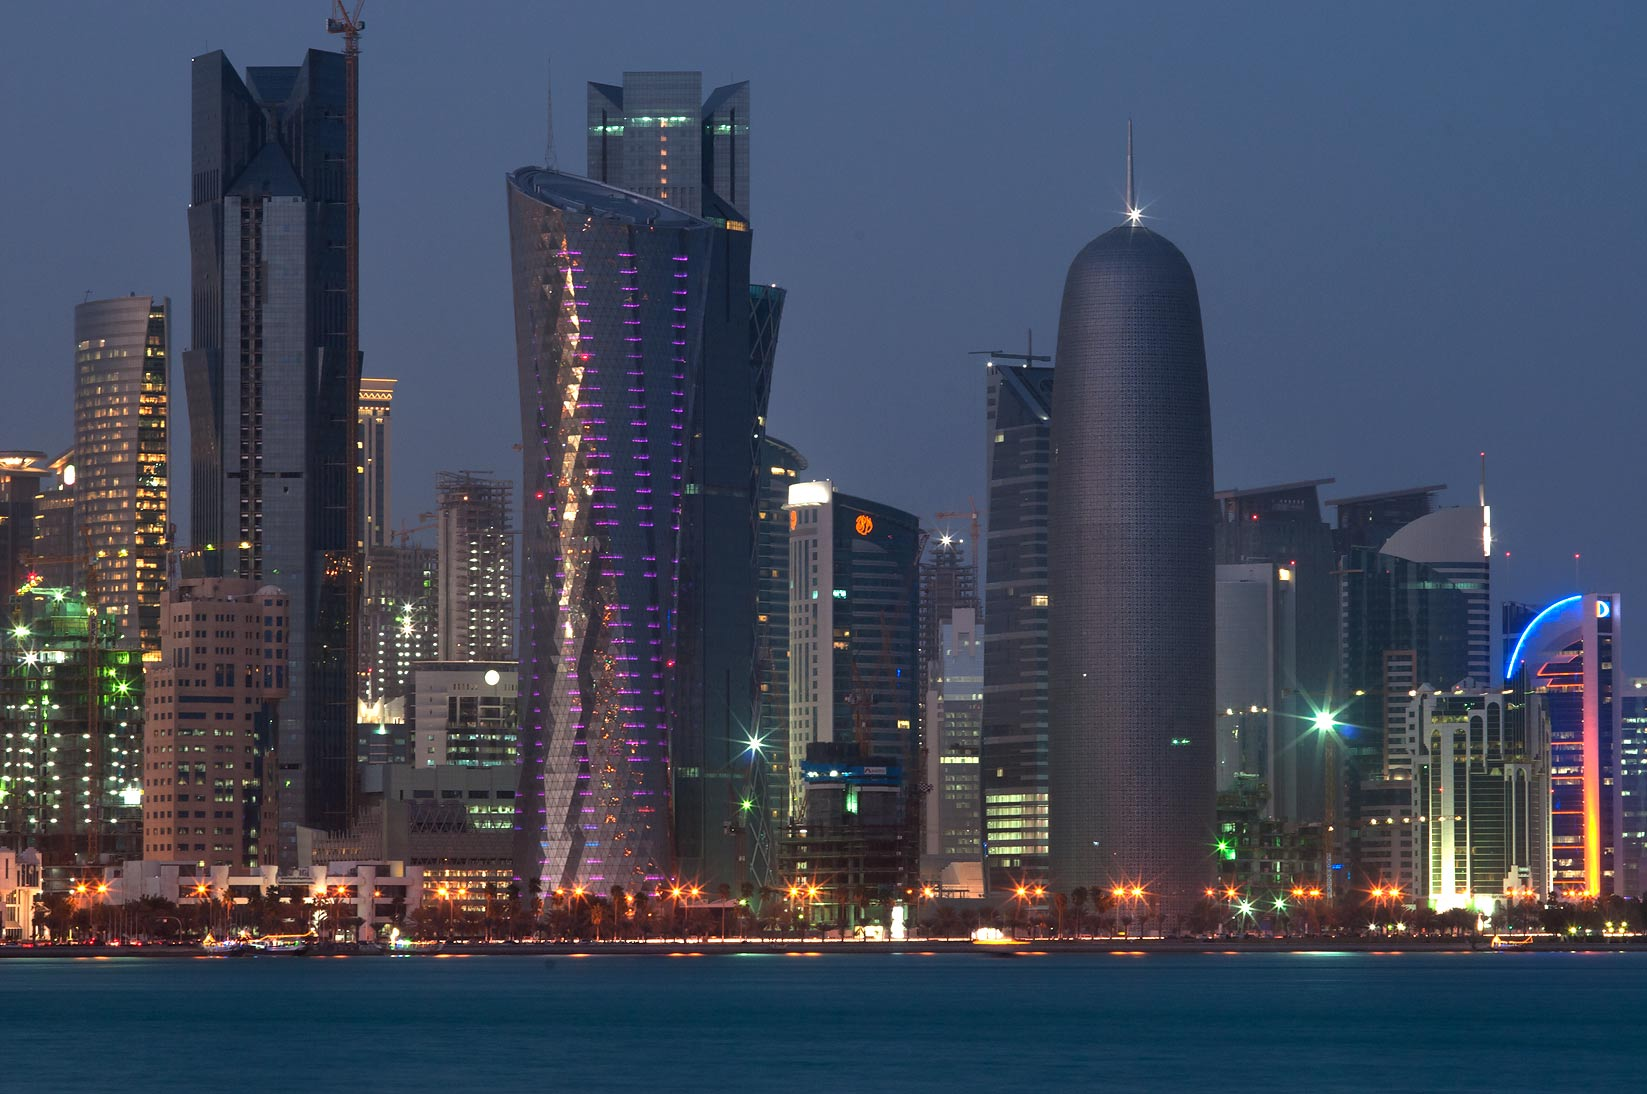 West-Bay-from-Corniche-seafront.-Doha-Qatar-...-West-Bay-from-Corniche-seafront.-Doha-Qatar-.